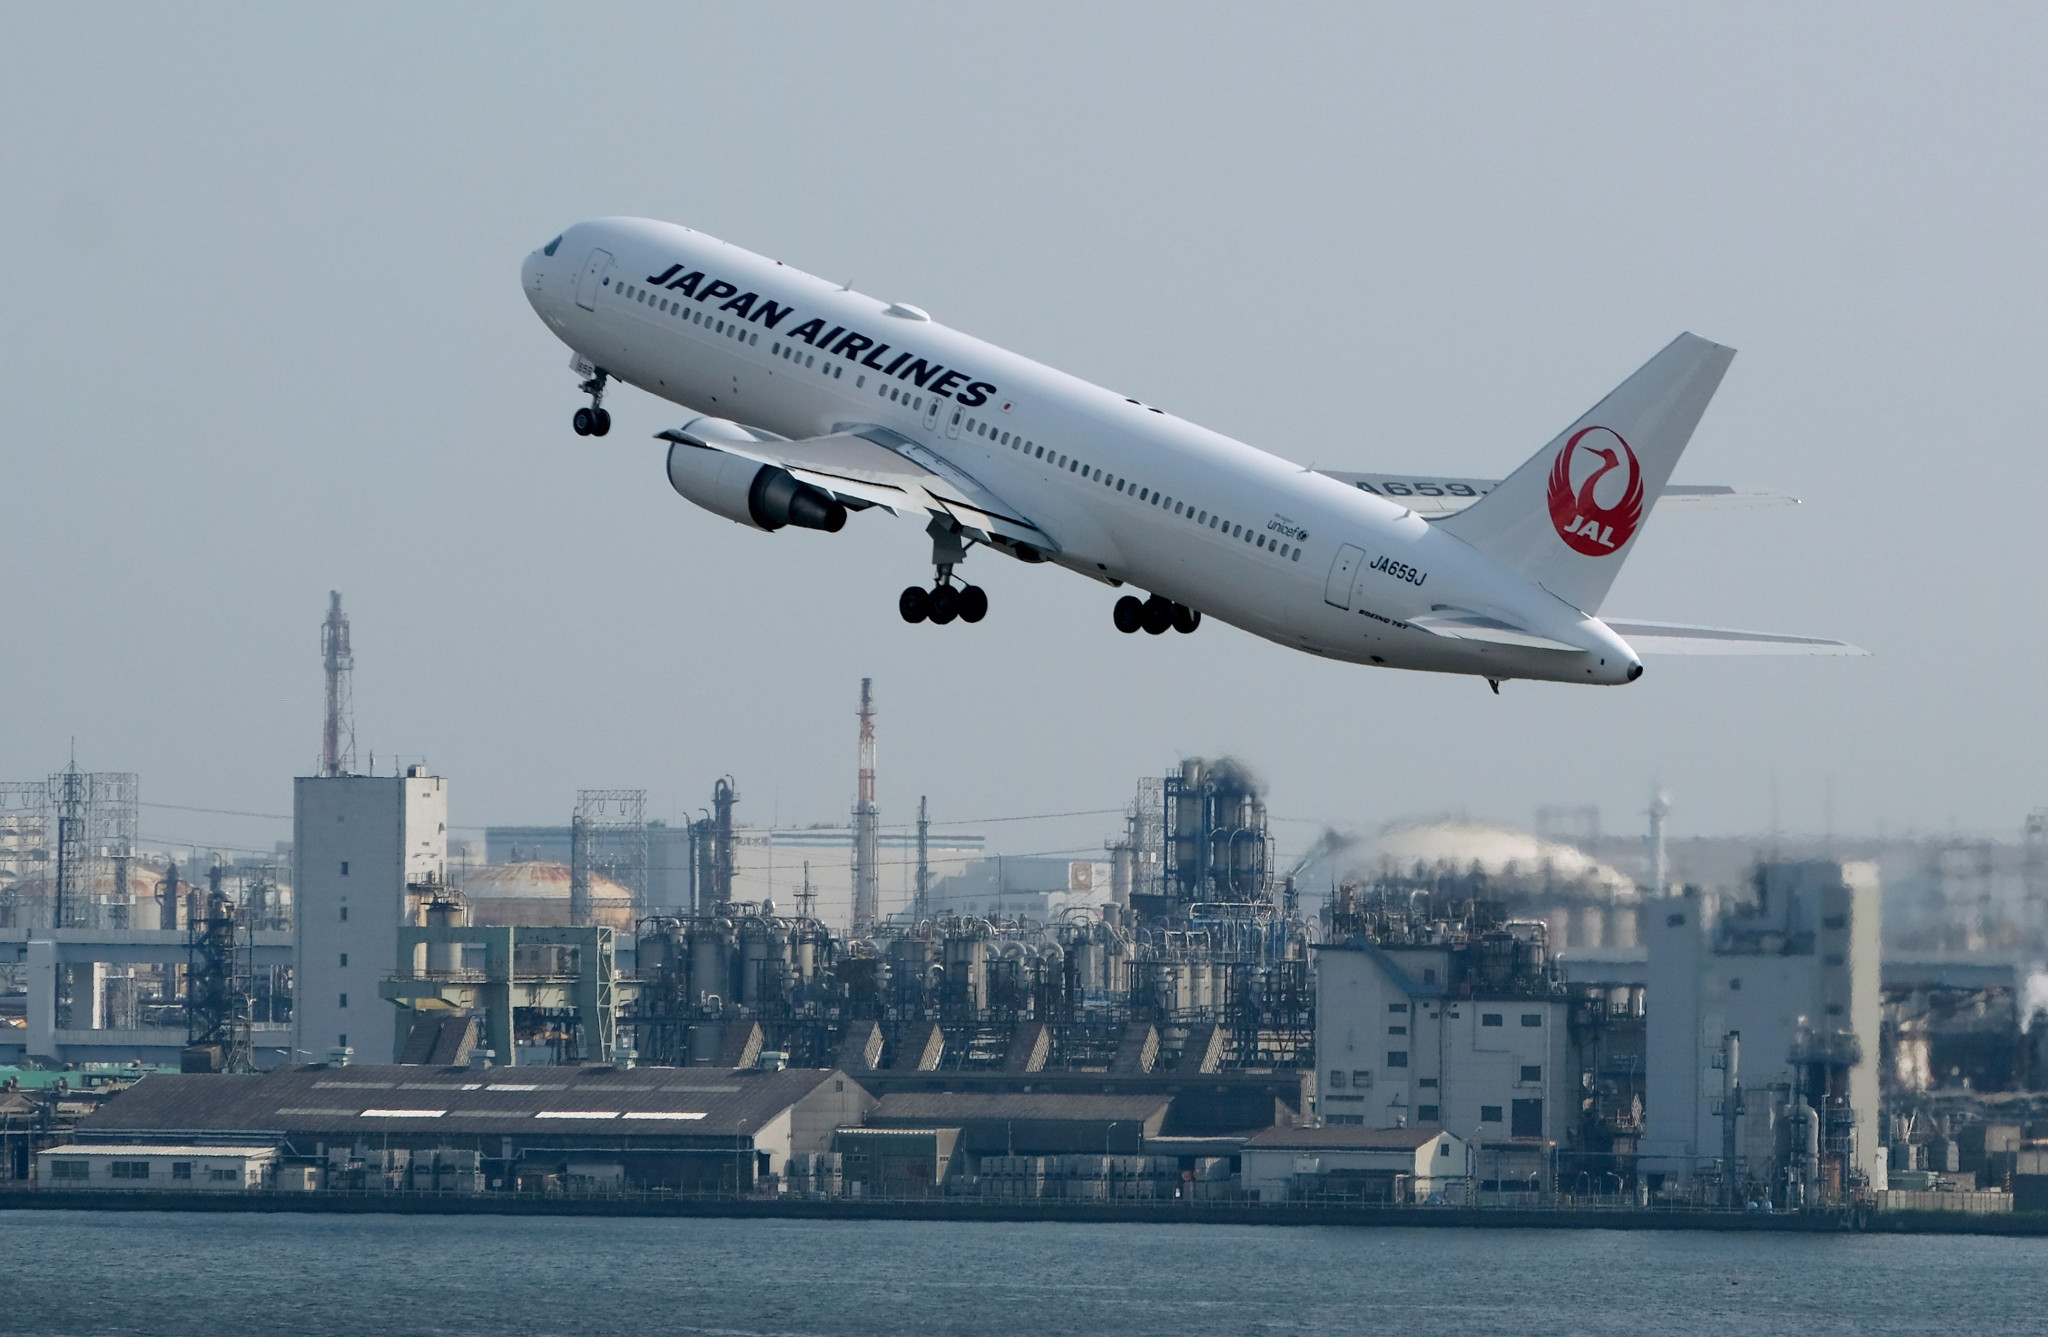 Japan Airlines will offer the seats to foreigners during the time of the Games ©Getty Images